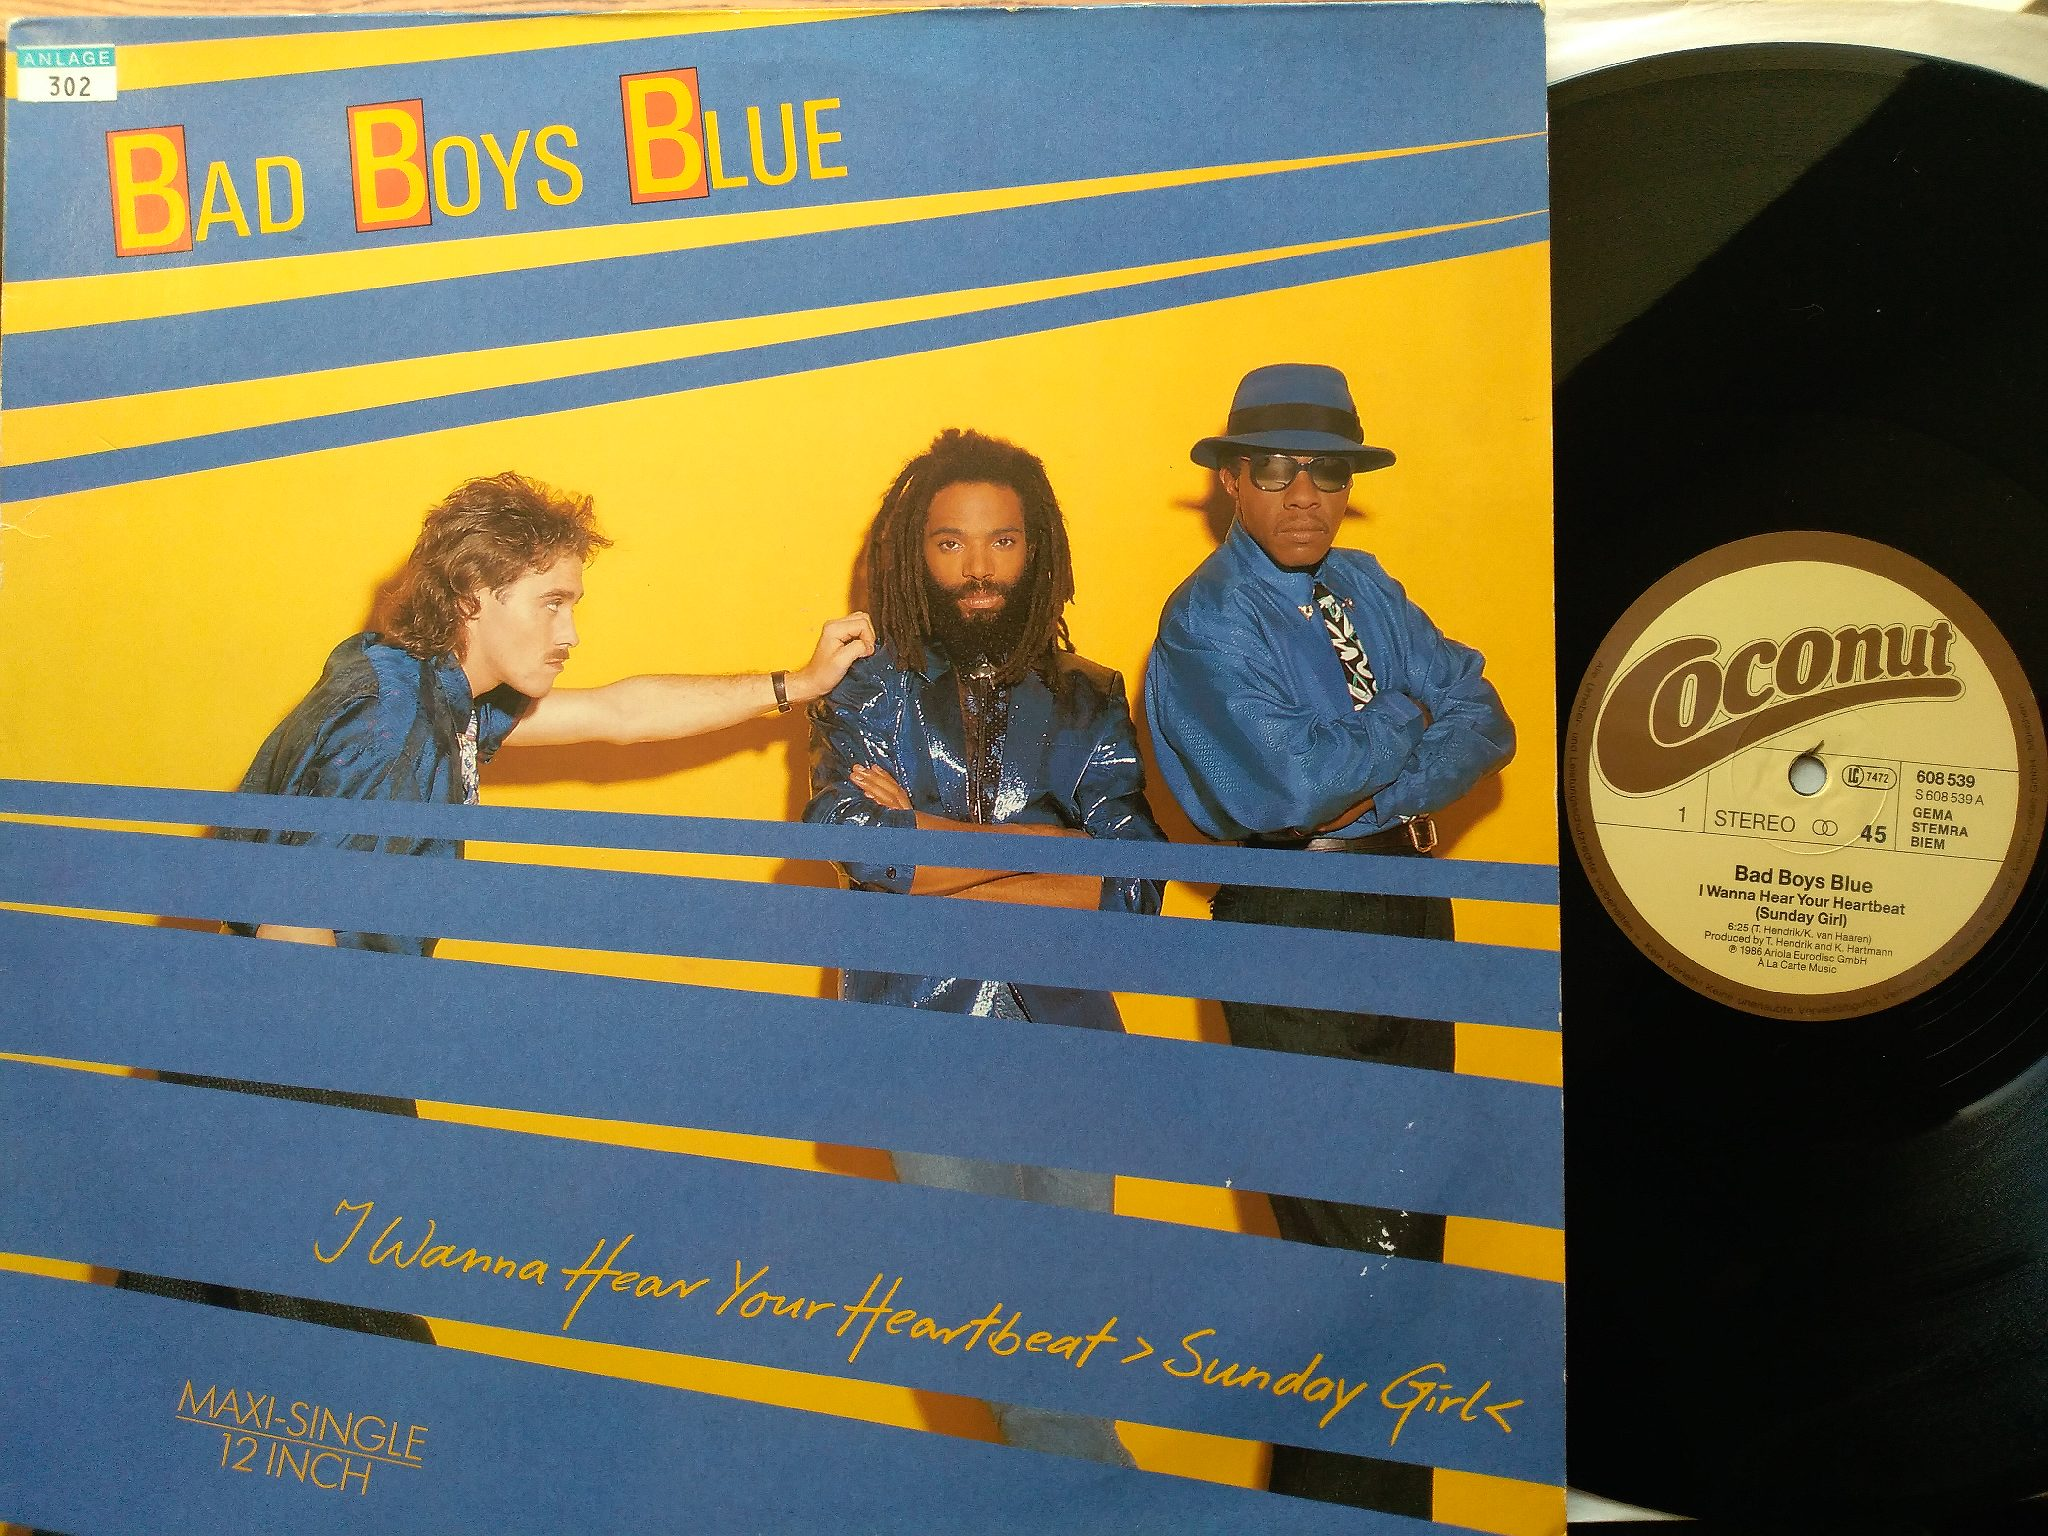 Bad Boys Blue - I Wanna Hear Your Hertbeat